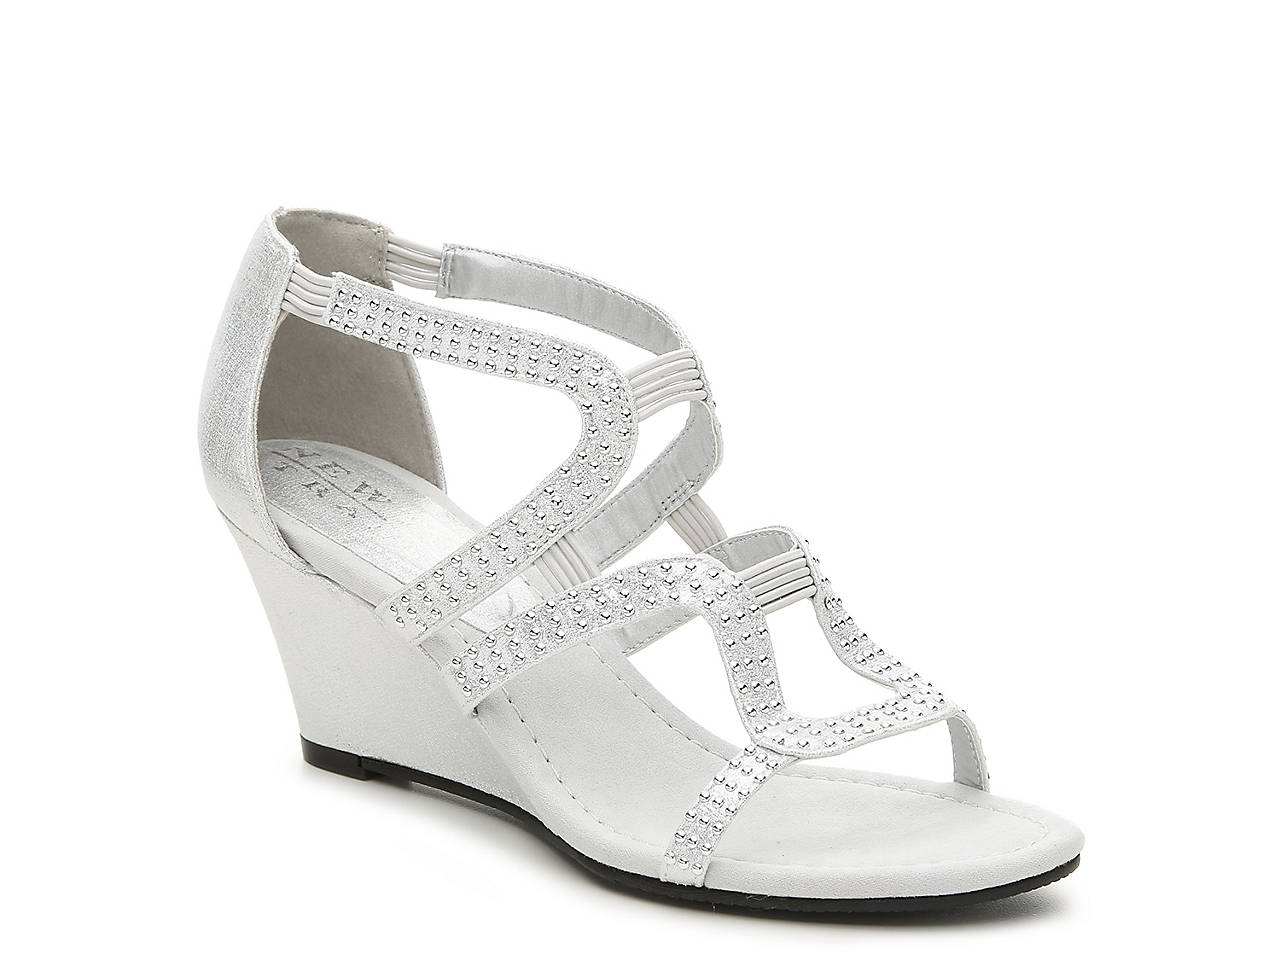 outlet limited edition comfortable sale online New York Transit Natural ... Women's Wedge Sandals jnjKn